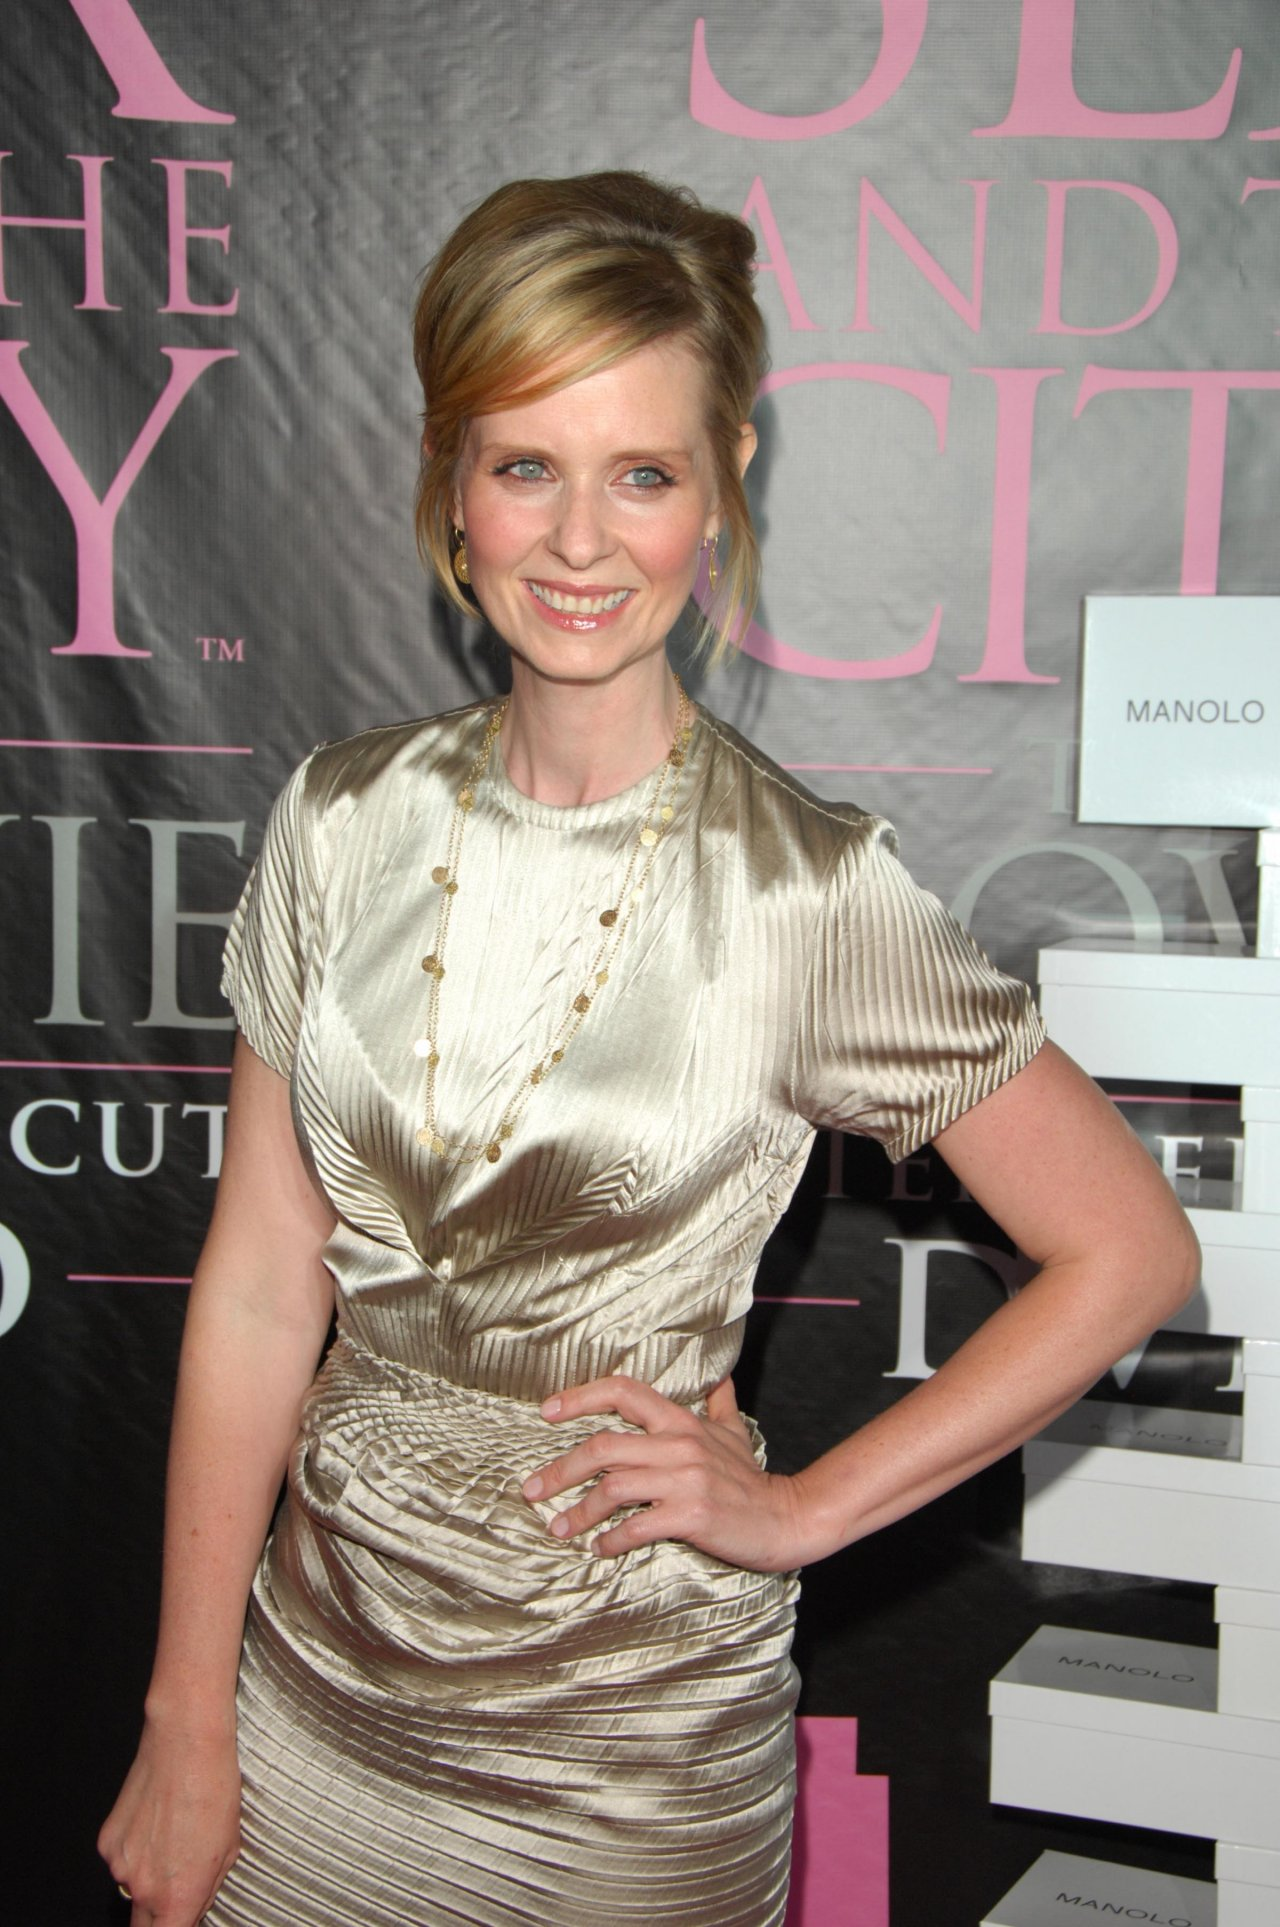 cynthia nixon wallpaper - photo #29